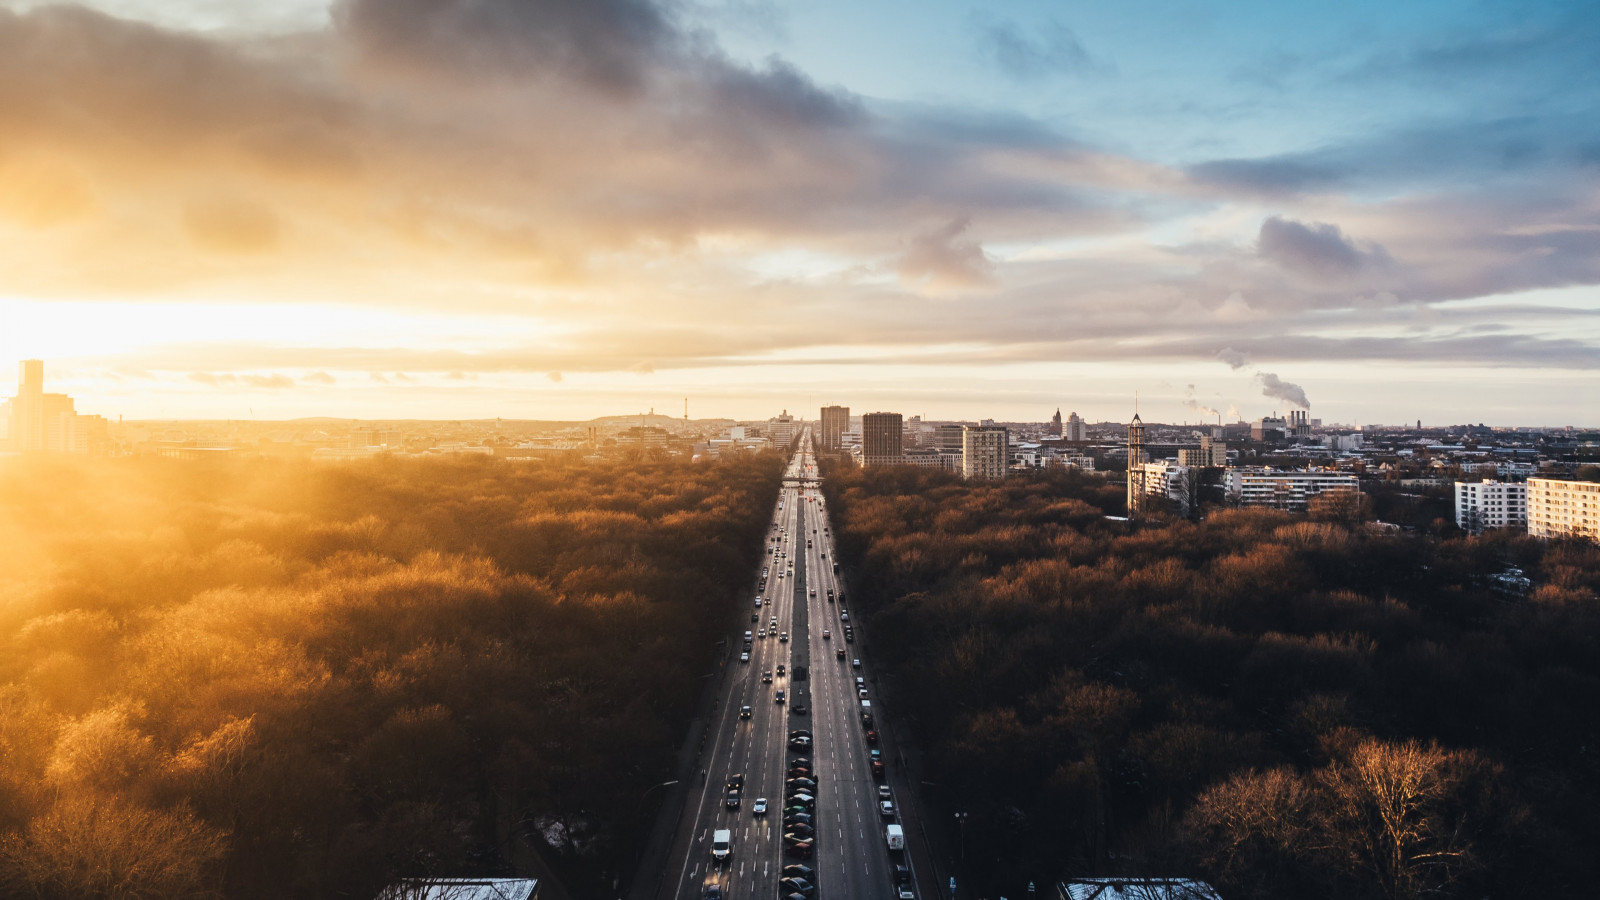 Sunset from Tiergarten wallpaper 1600x900